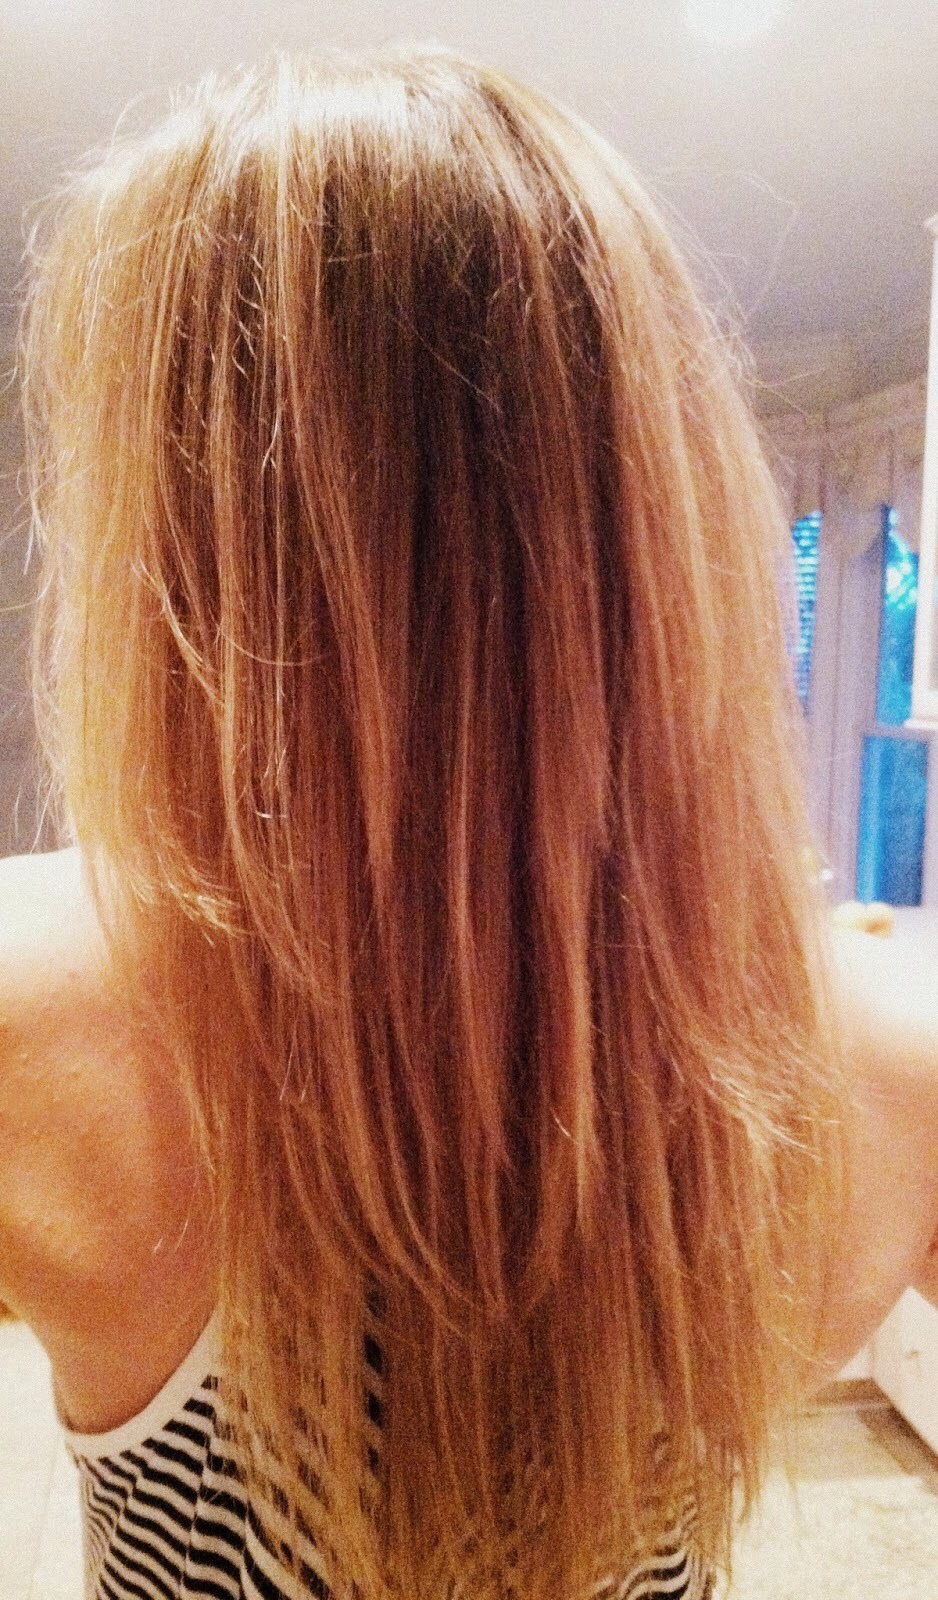 Dip your tips, or the hair you want lightened into the juice. Make sure you soak your hair!